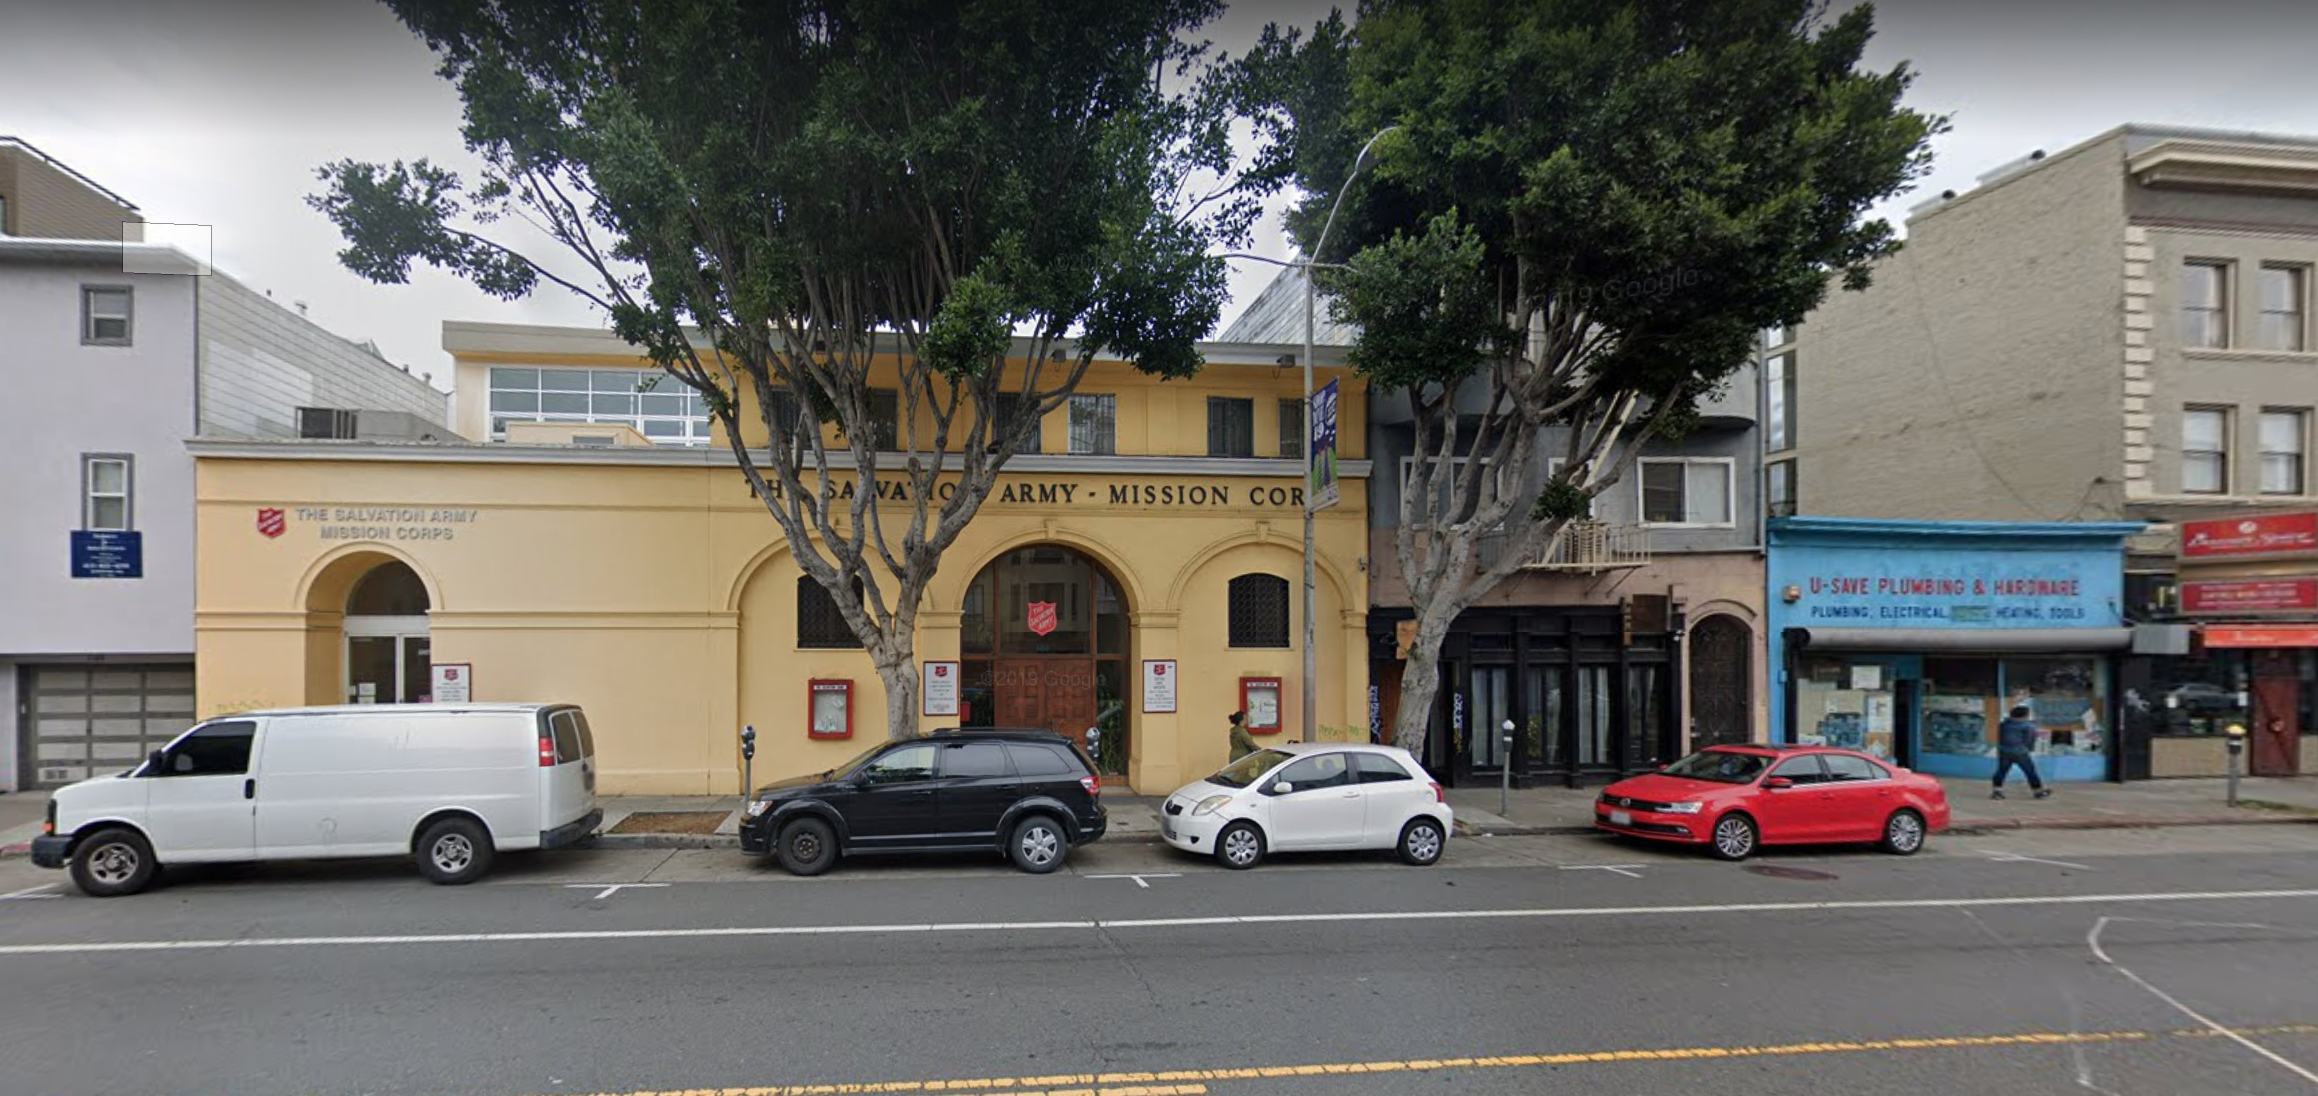 Salvation Army Community Center Off Valencia Street Might Become Homeless Shelter